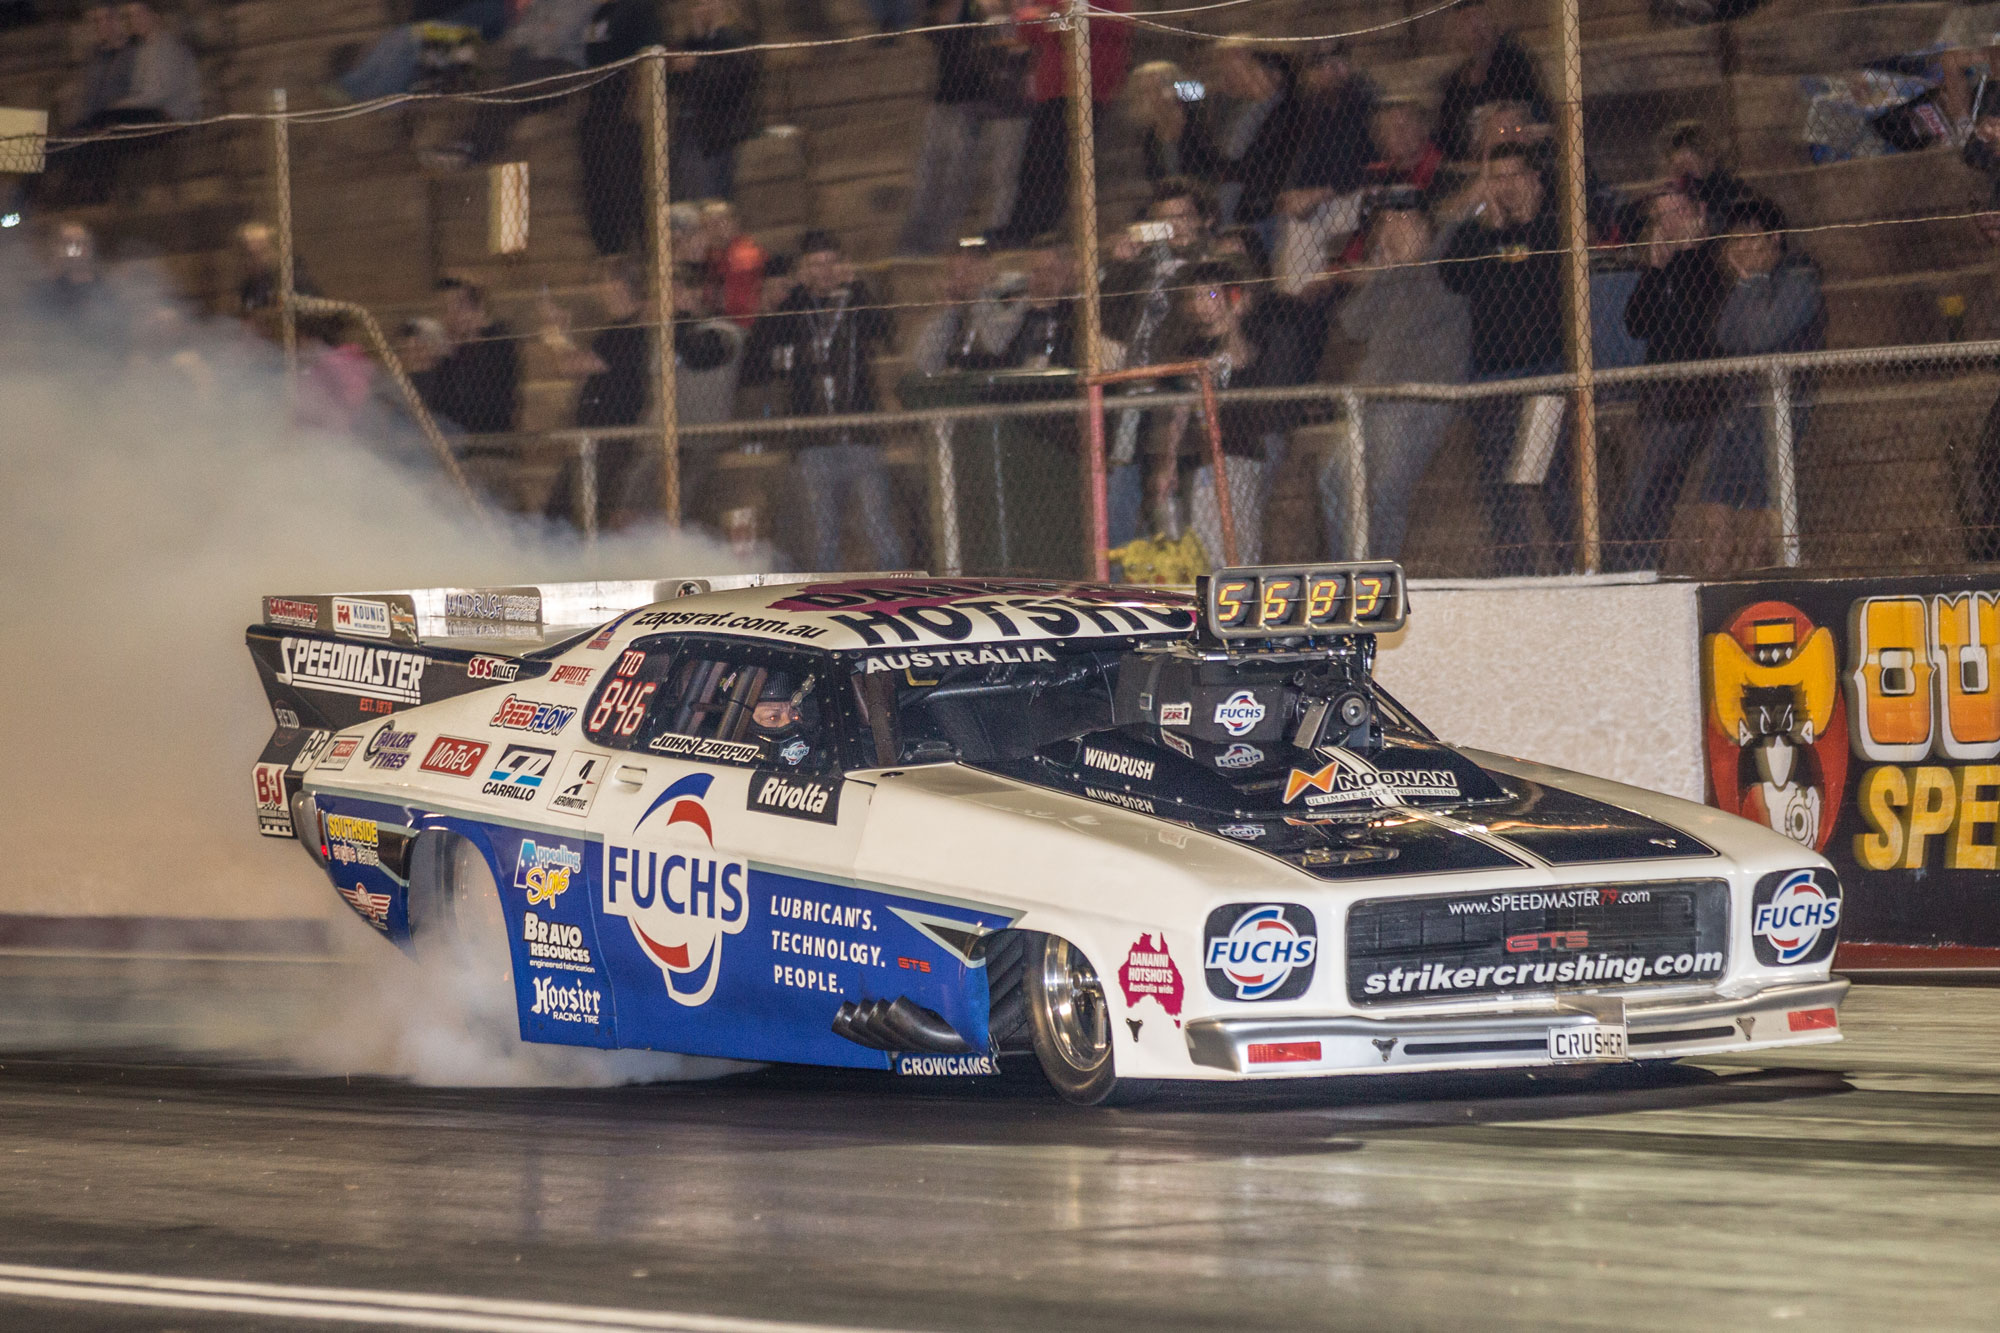 andra-drag-racing-finals-in-adelaide--air-sat-31-march-2017-92912